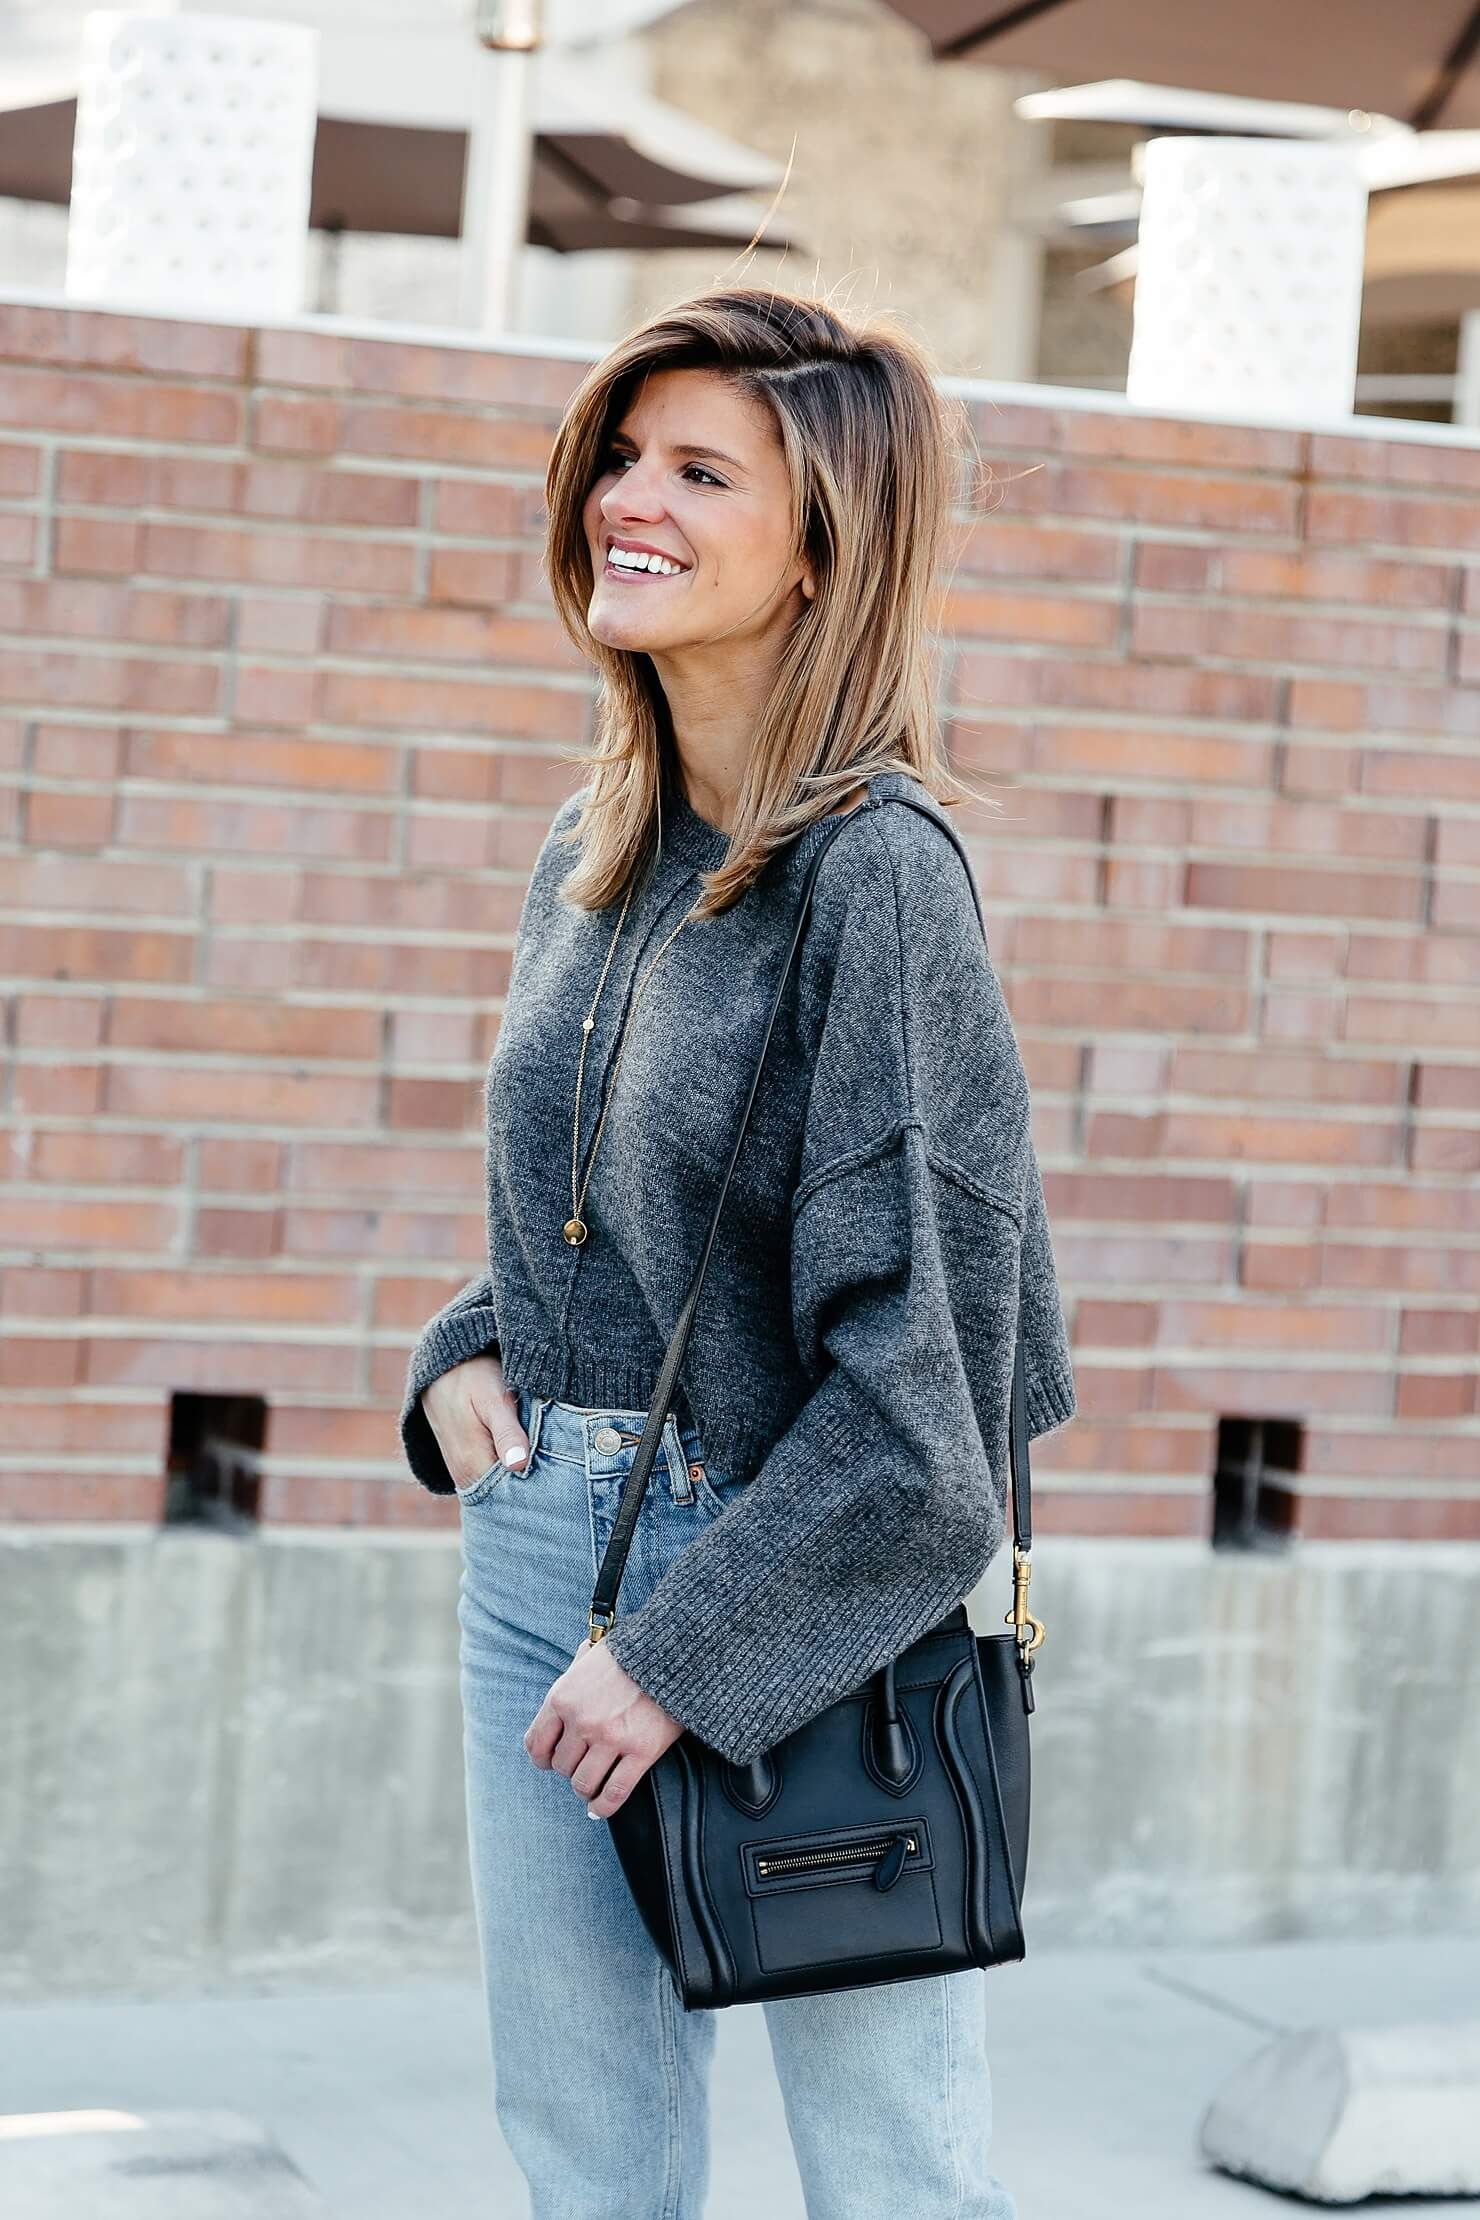 ecf177e66db0b Currently Loving  Cropped Sweaters + High-Waisted Anything ...